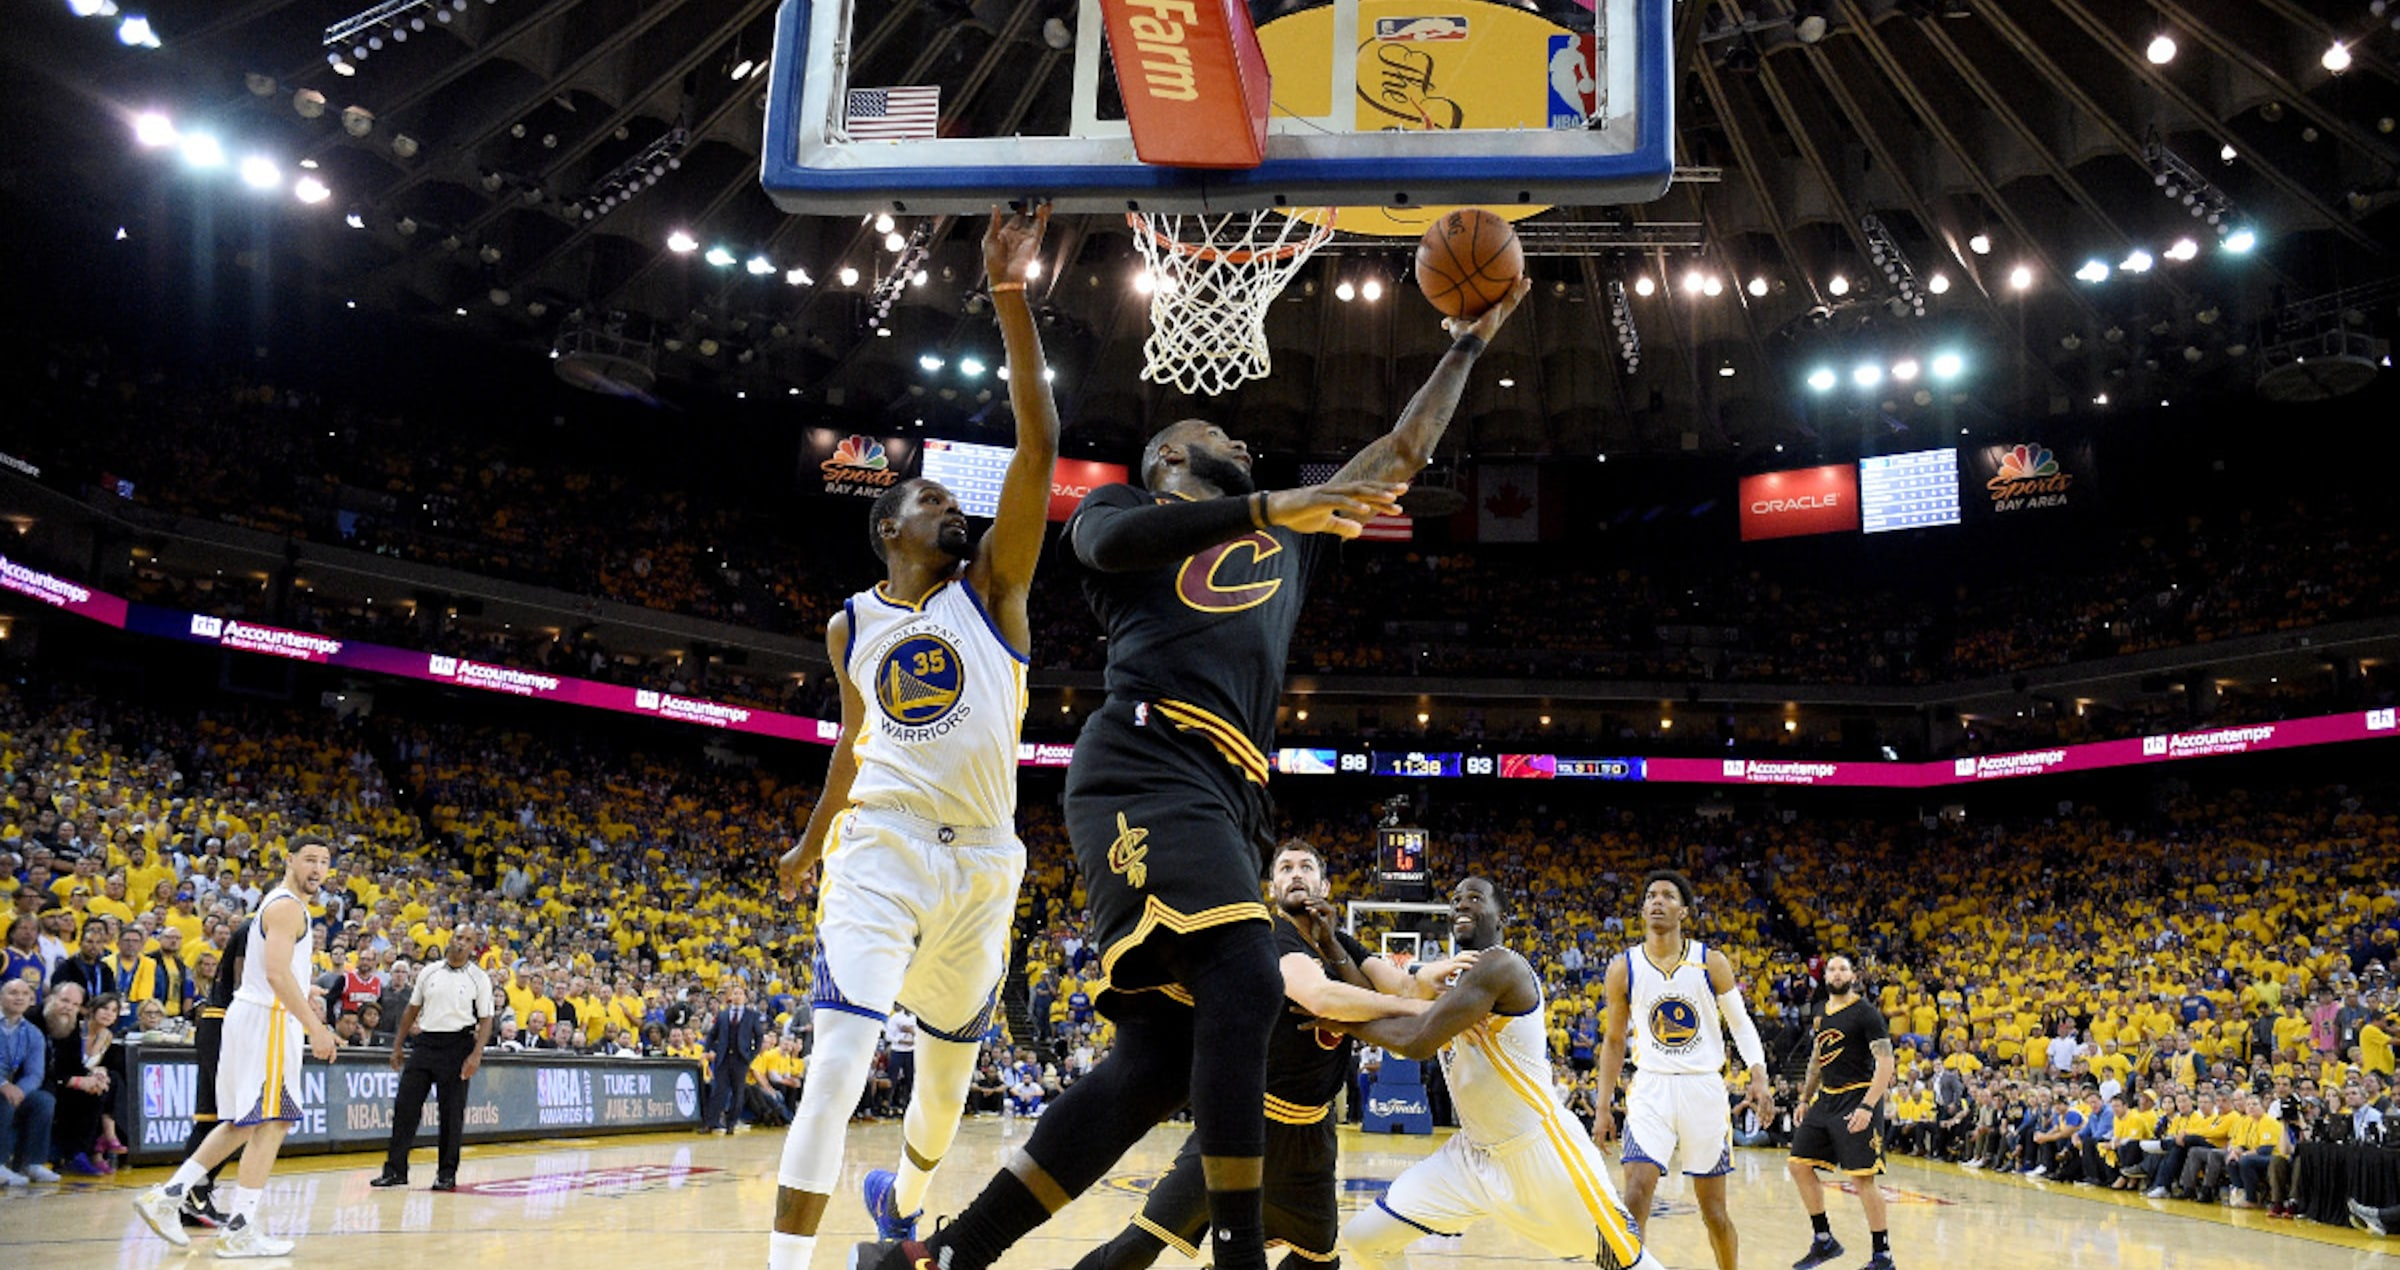 LeBron James #23 of the Cleveland Cavaliers goes up for a shot against Kevin Durant #35 of the Golden State Warriors in Game 5 of the 2017 NBA Finals at ORACLE Arena on June 12, 2017 in Oakland, California.